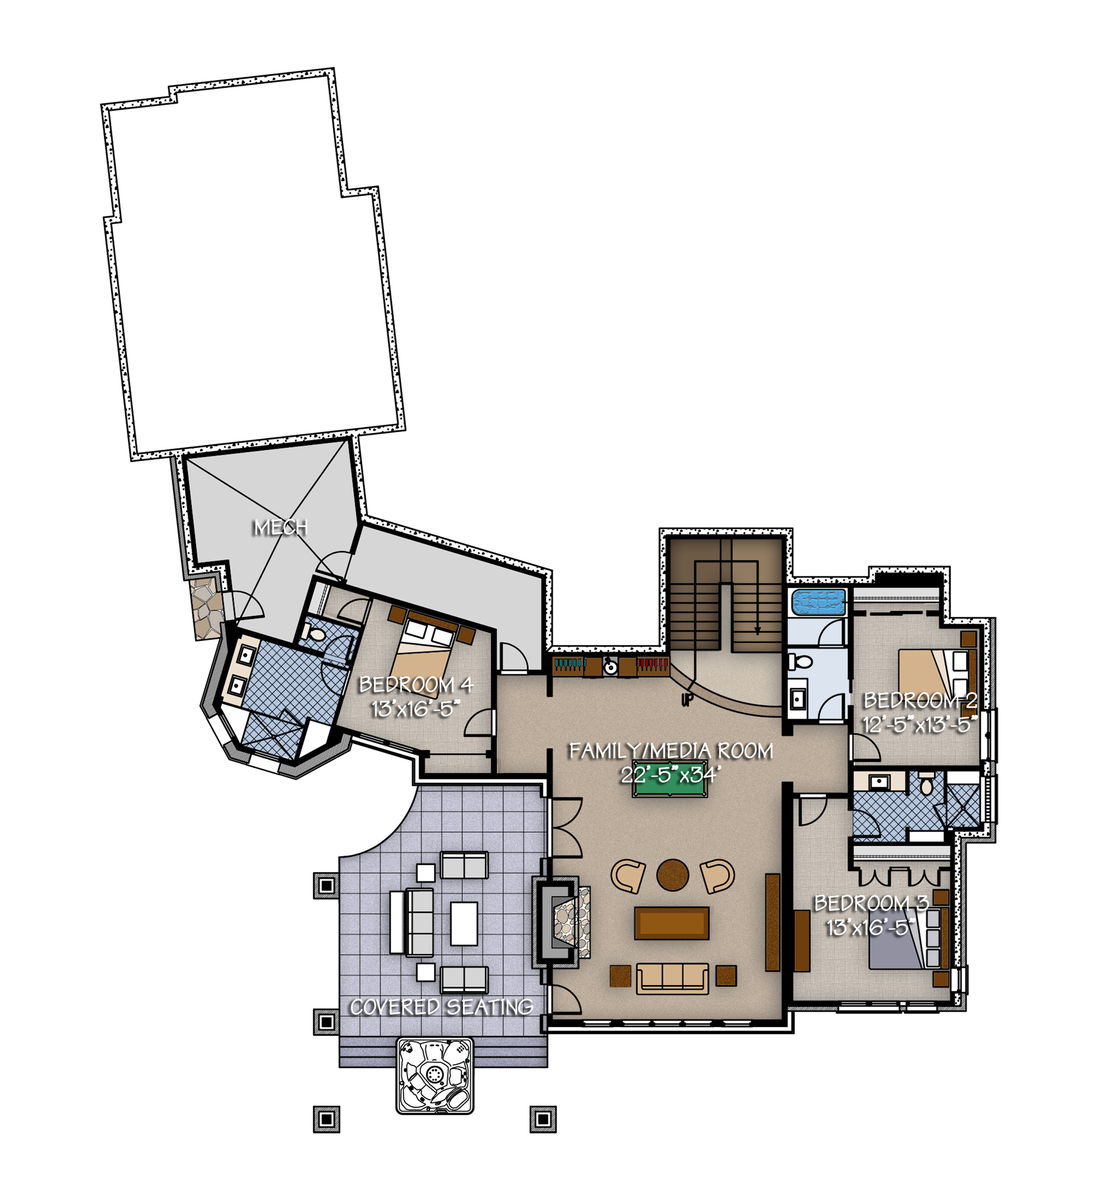 sanctuary timber frame home floor plan by canadian timber frames ltd